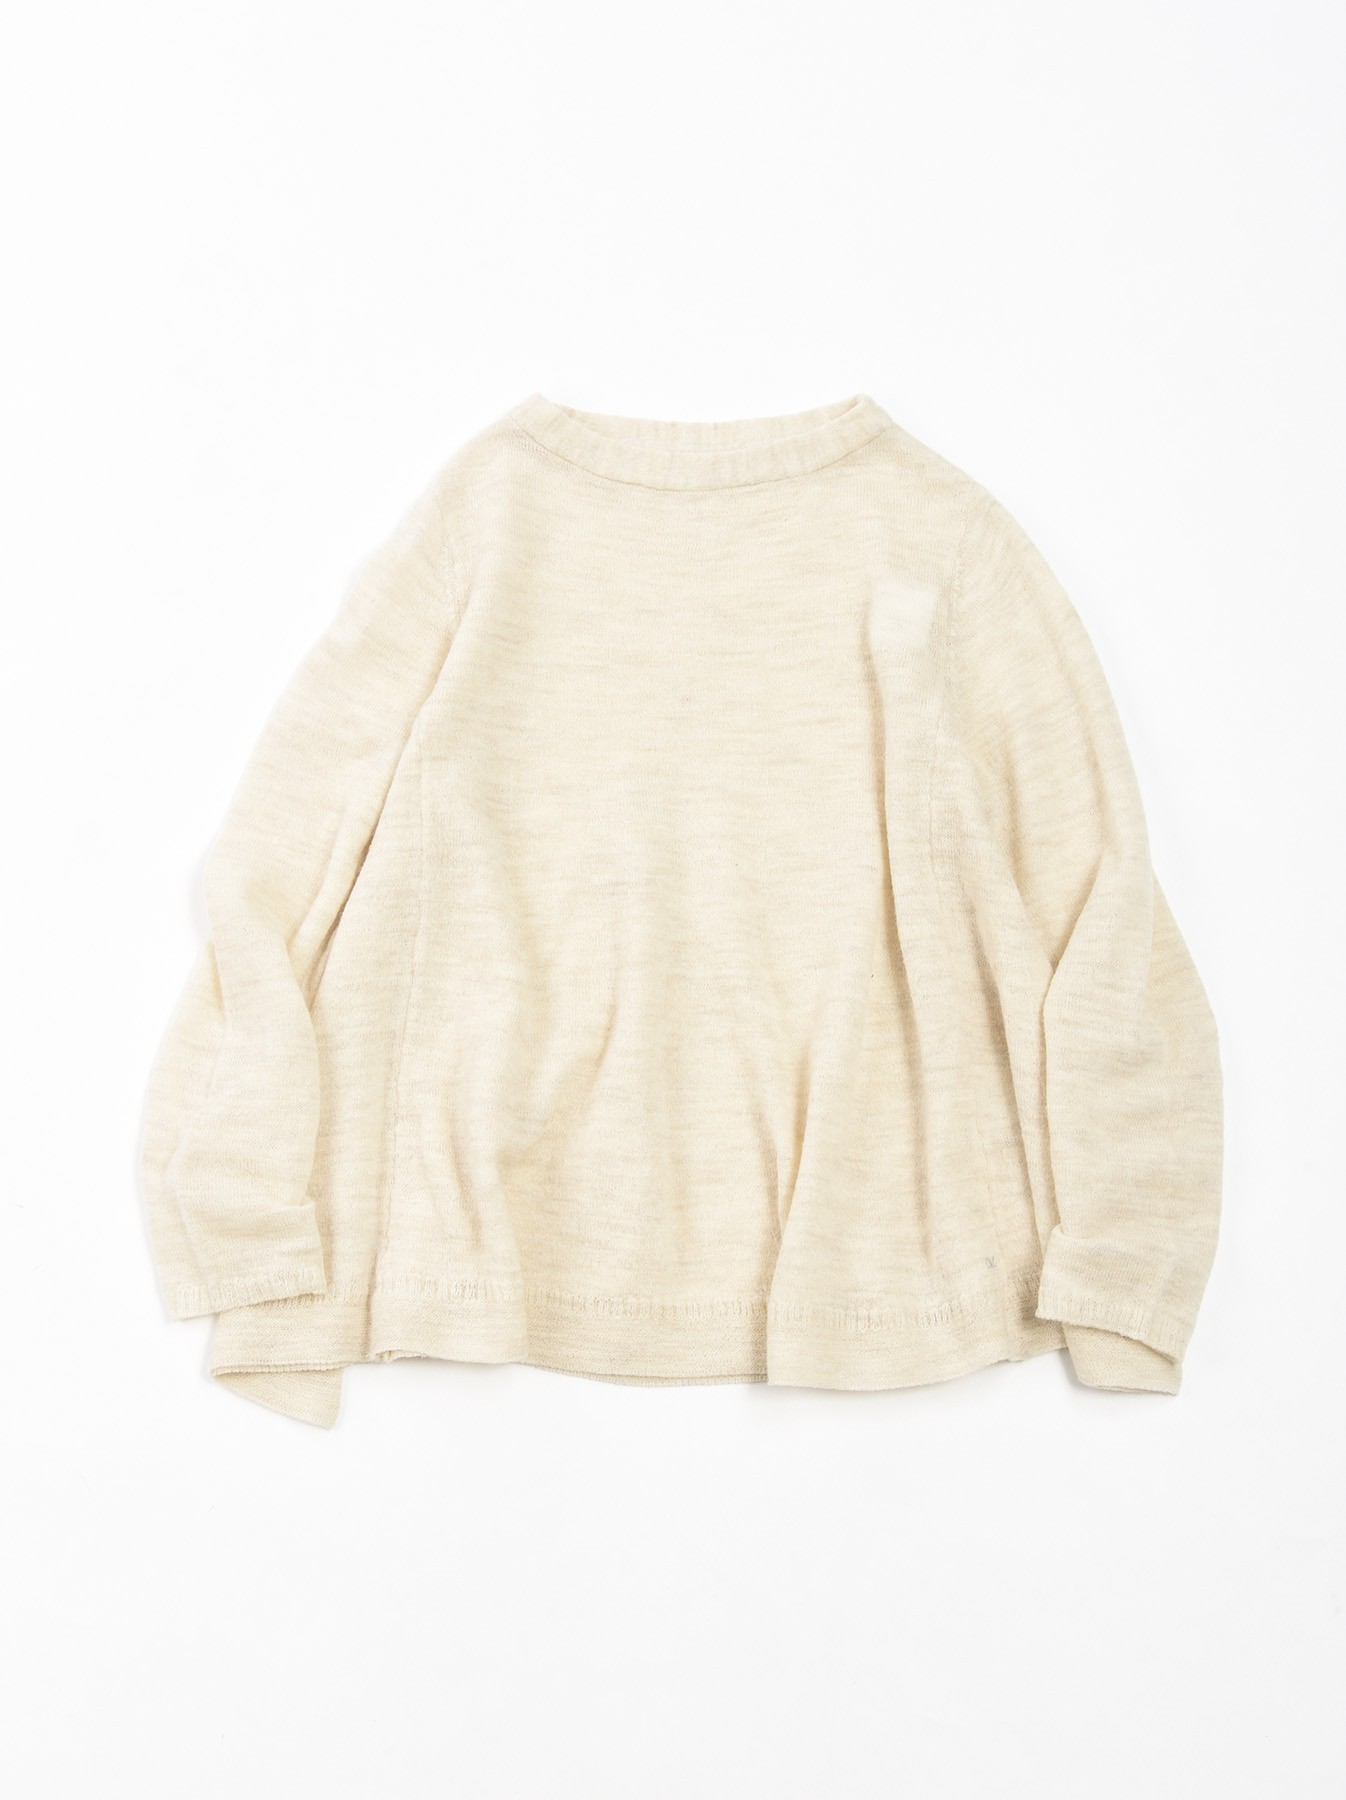 05 - Ivory Flaire TOP